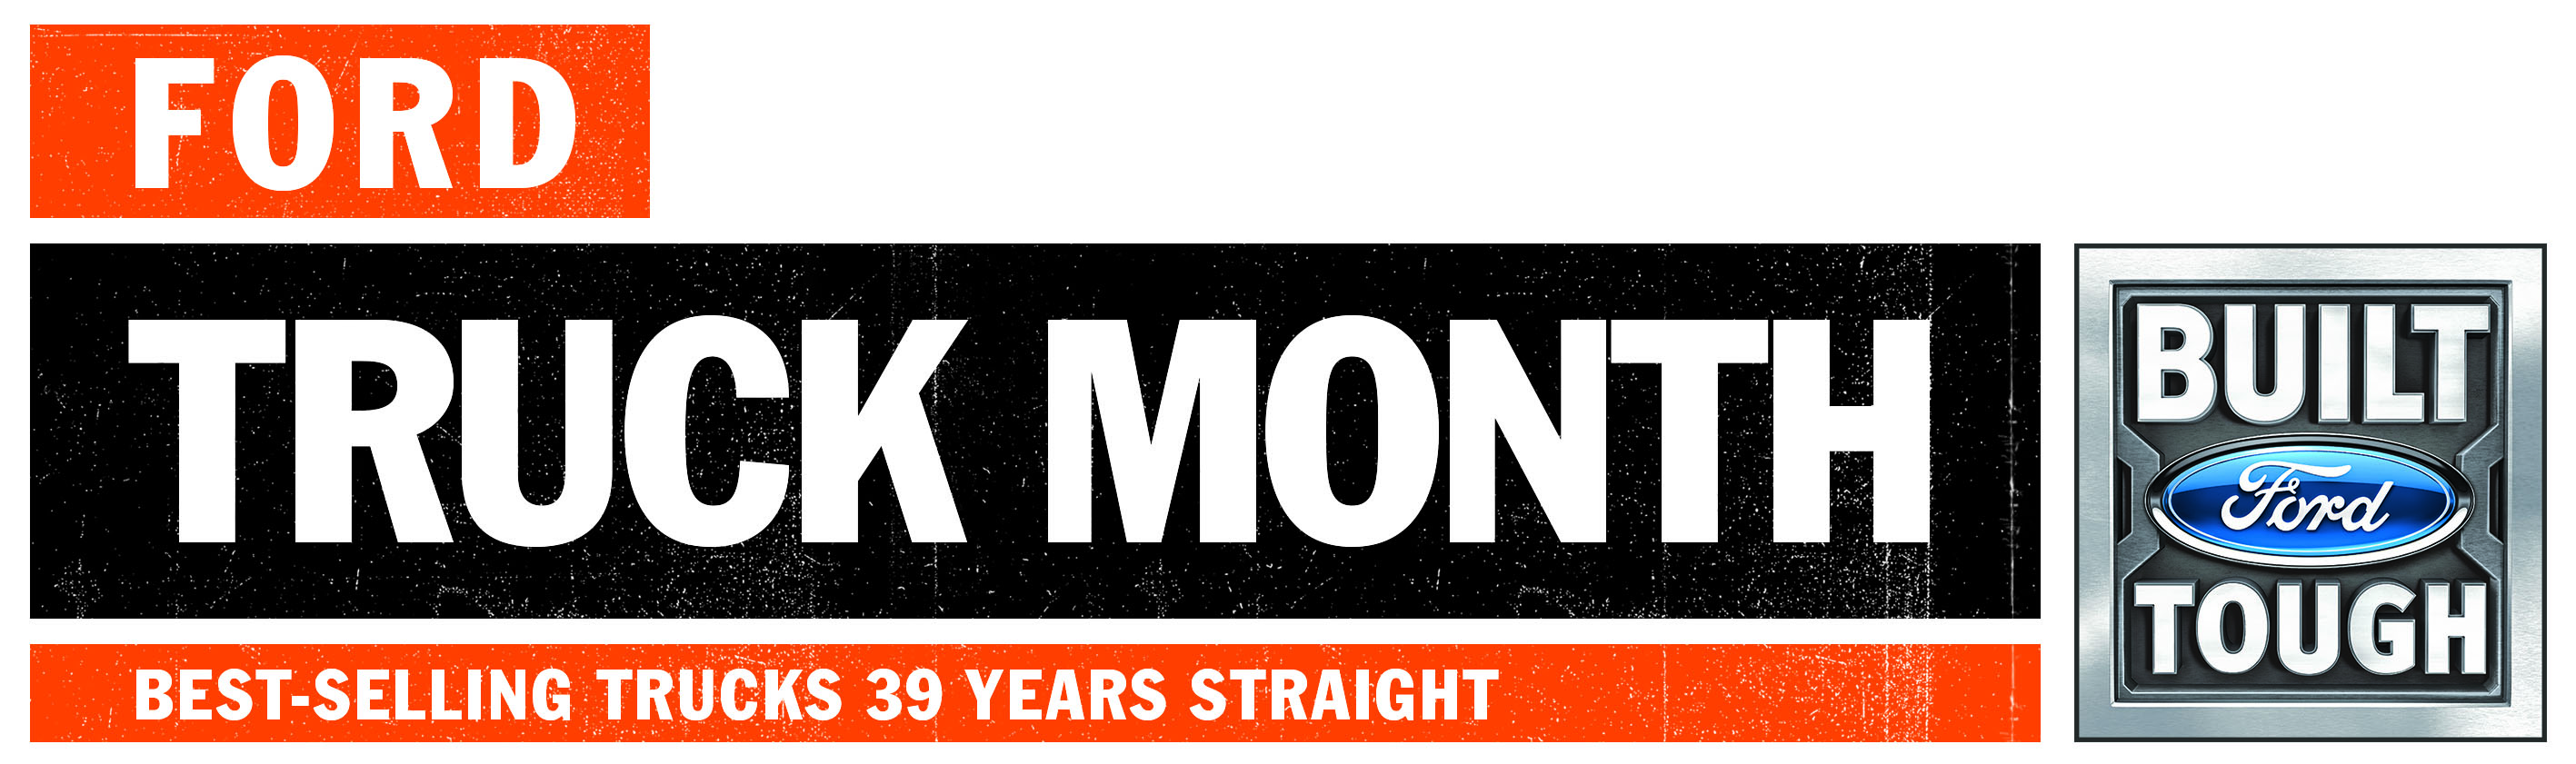 March Is Truck Month At Gullo Ford Of Conroe The Woodlands And Our Team Celebrating With Tons Amazing Special Offers Going On Now Through April 4